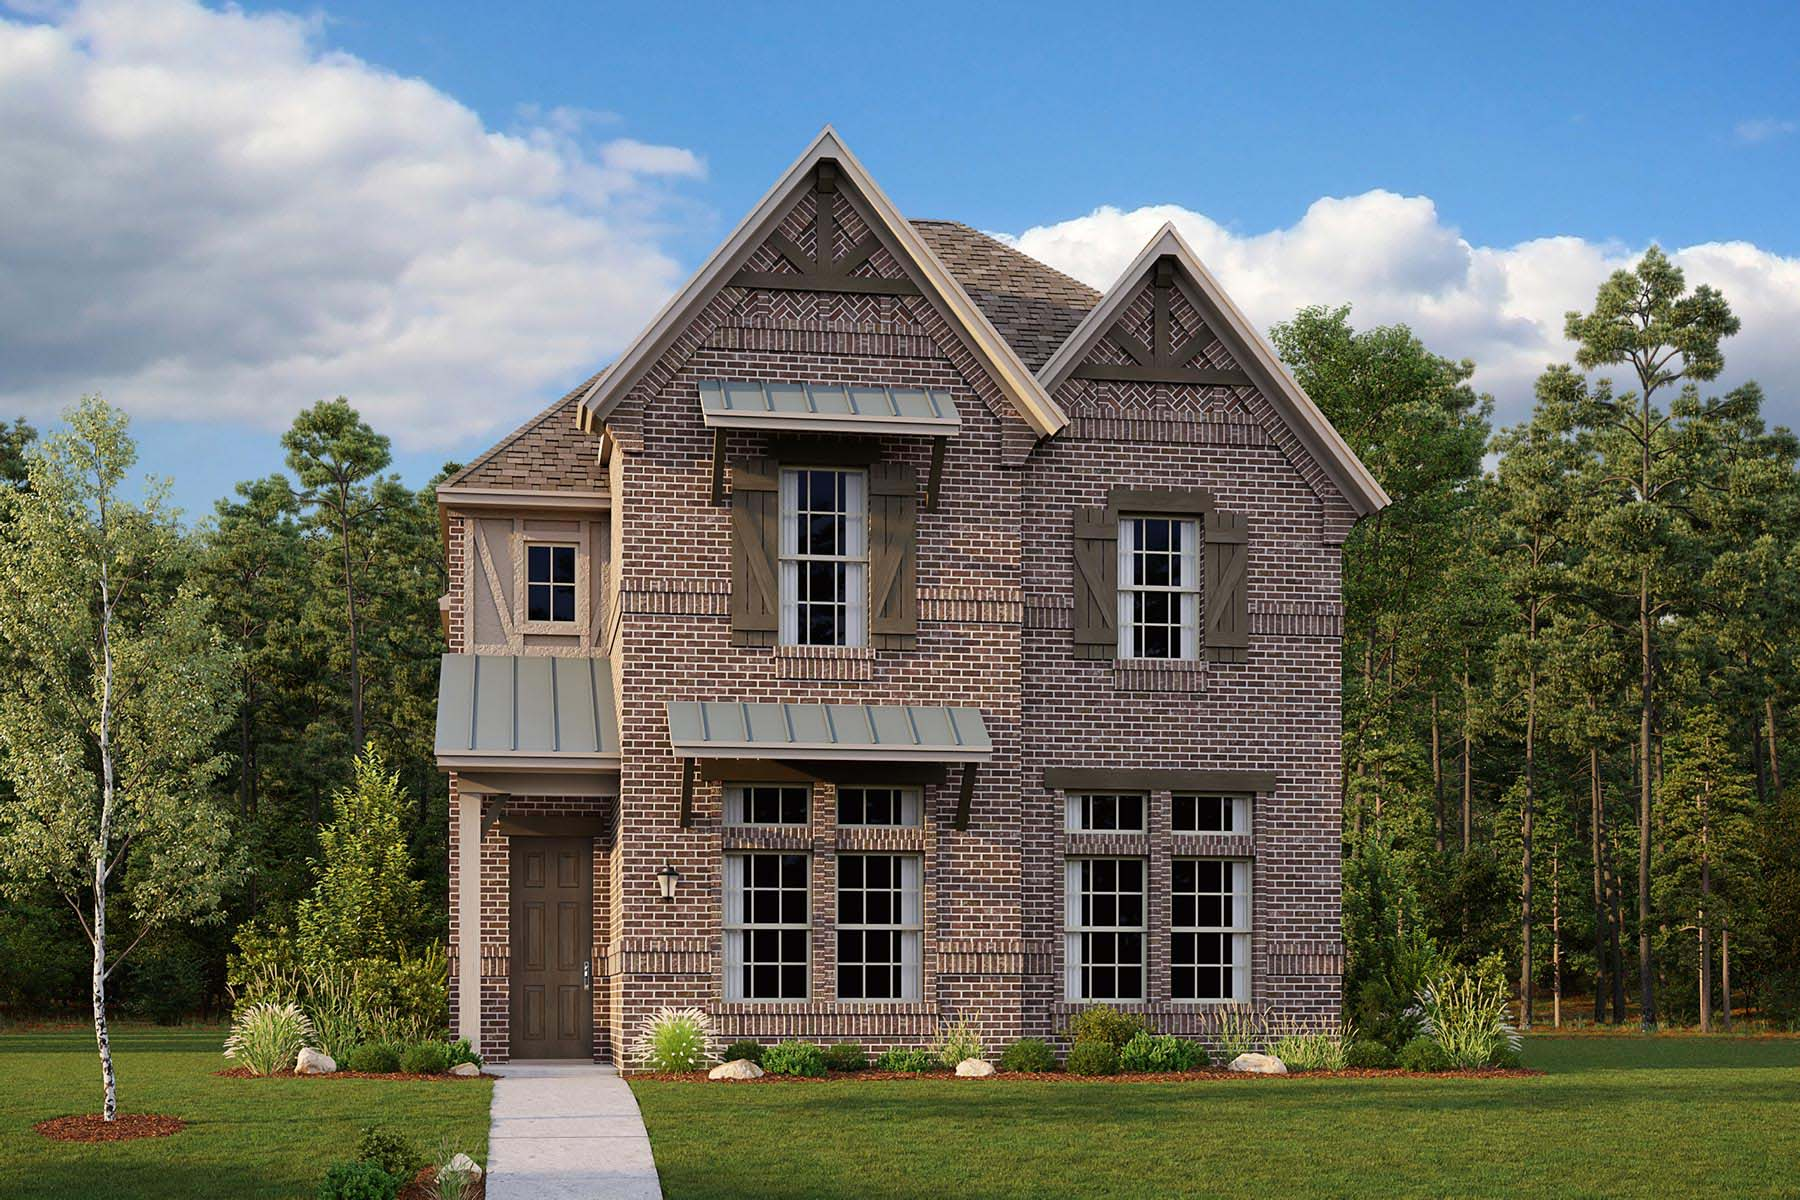 Woodland Plan DAL_KensingtonPlace_Woodland_ElevationC_1800x1200 at Kensington Place in Farmers Branch Texas by Mattamy Homes